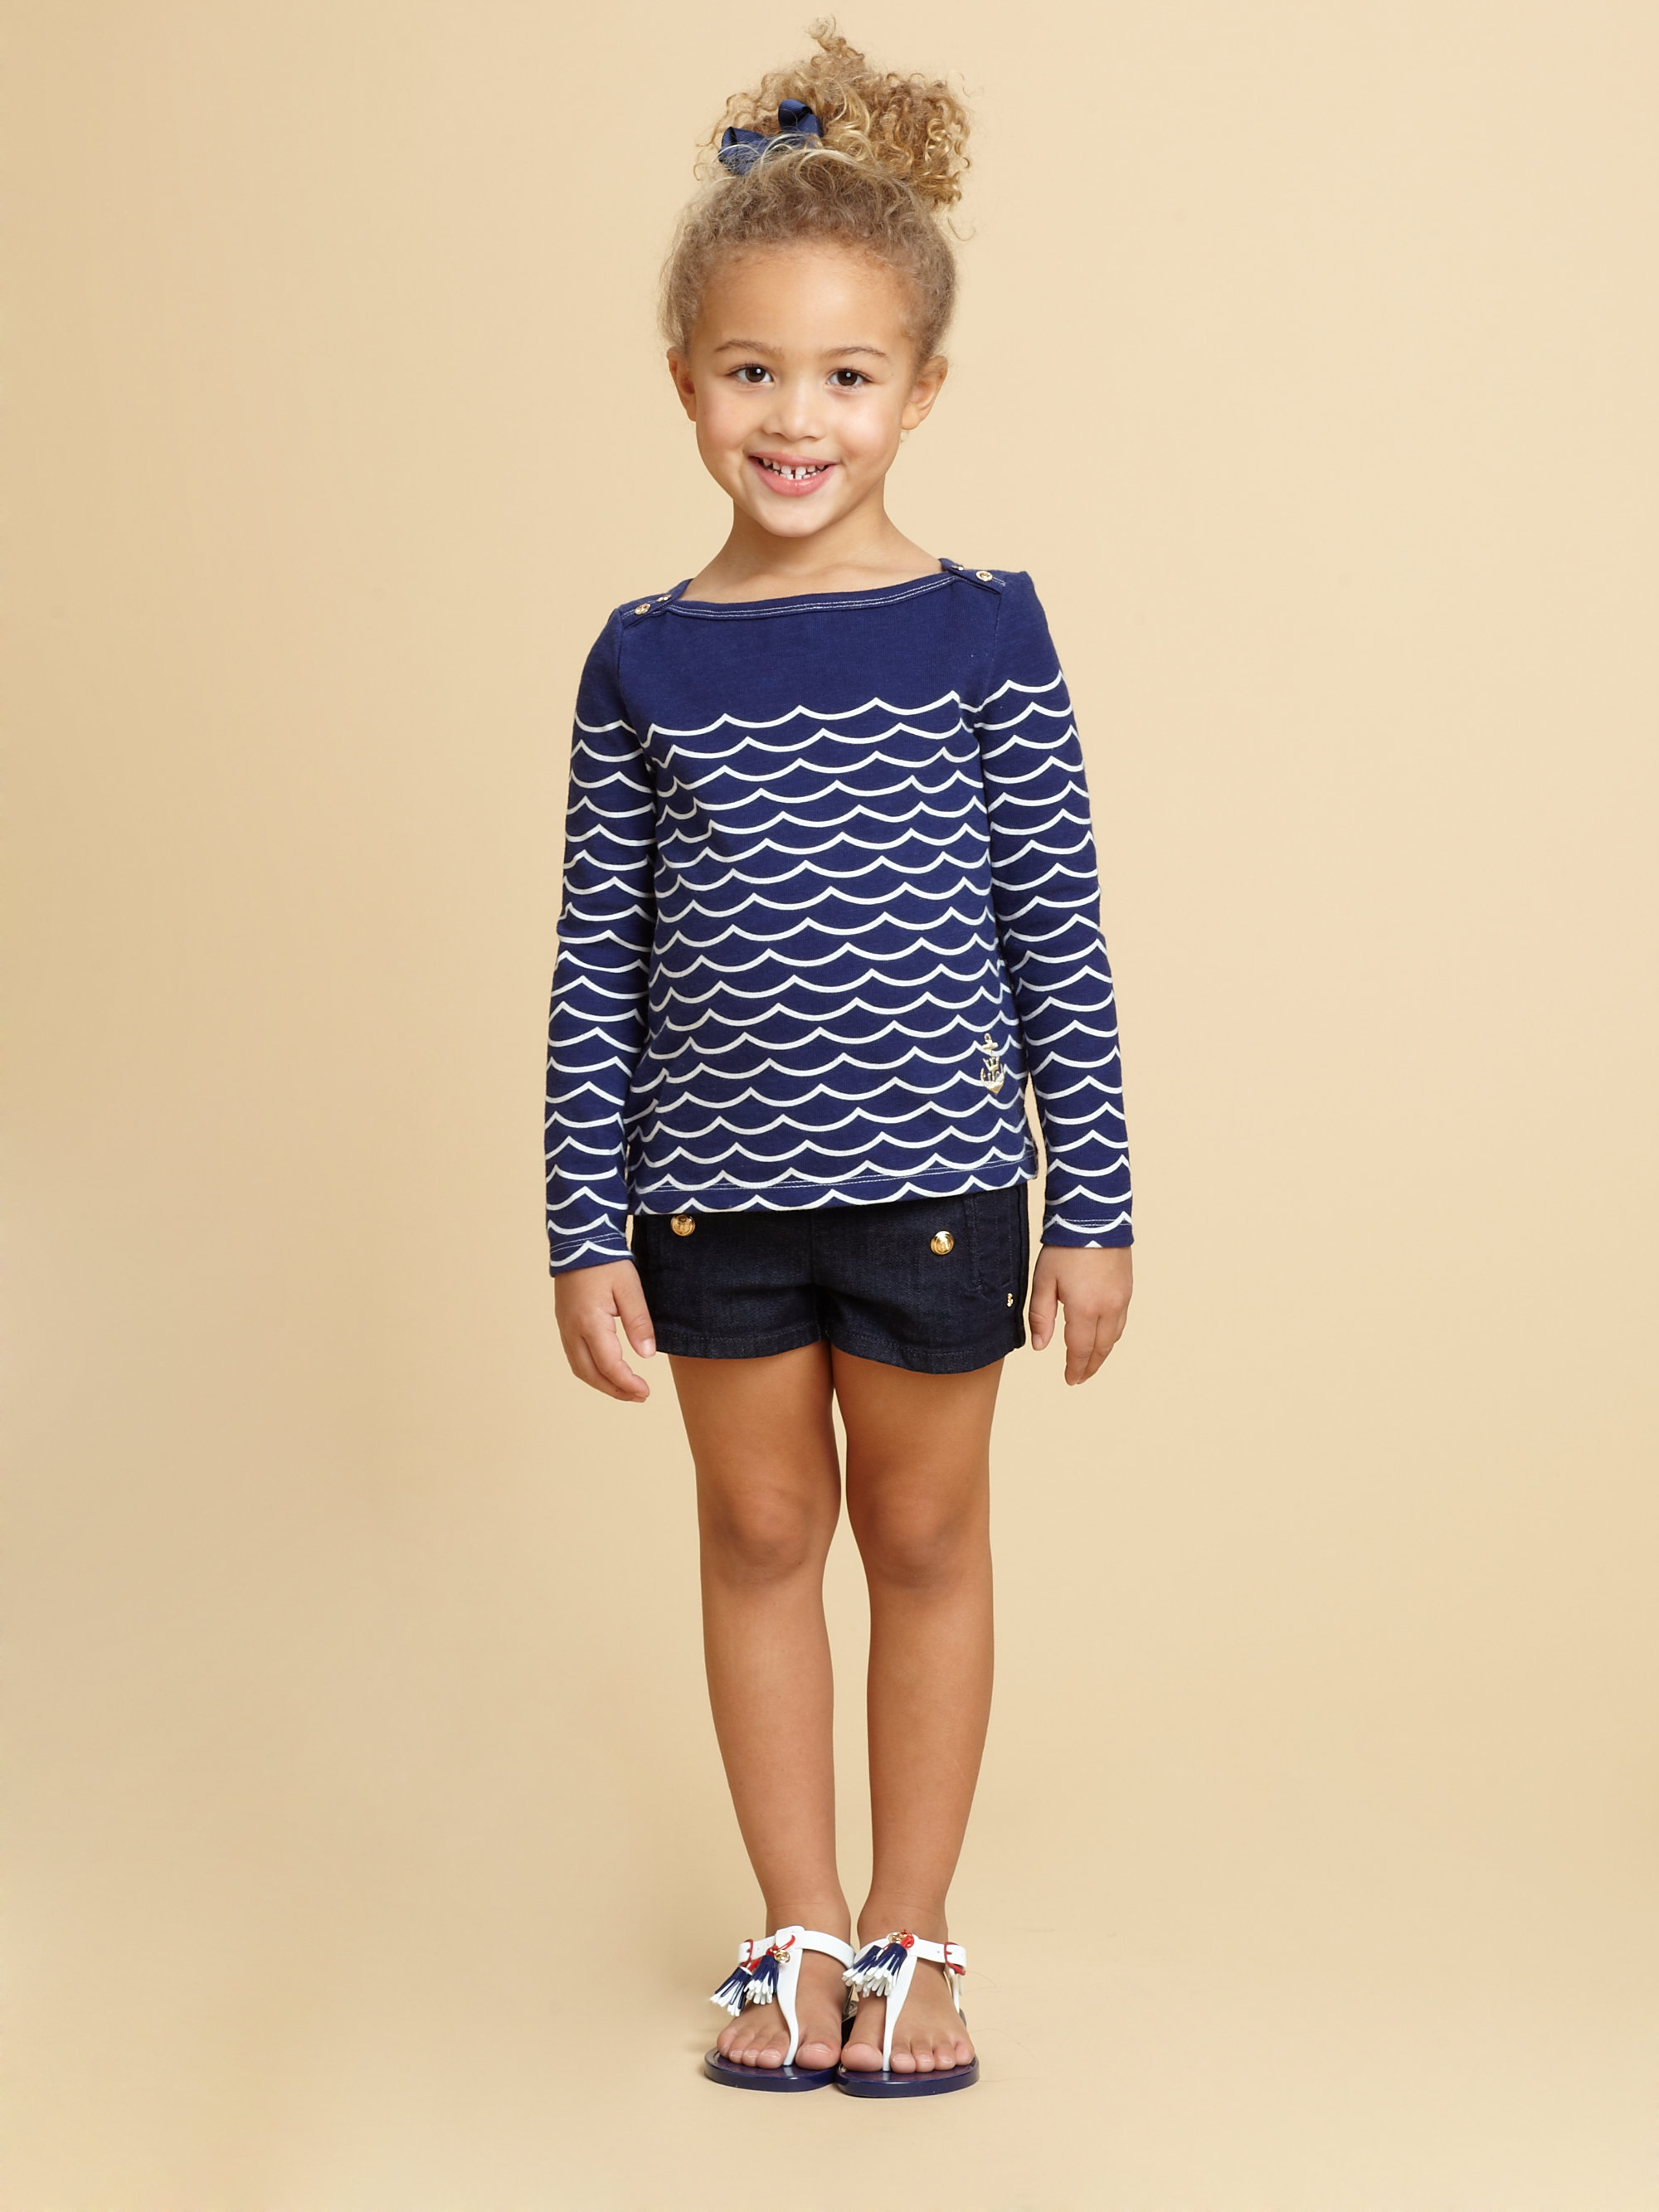 Lyst - Juicy Couture Toddlers Little Girls Denim Sailor ...